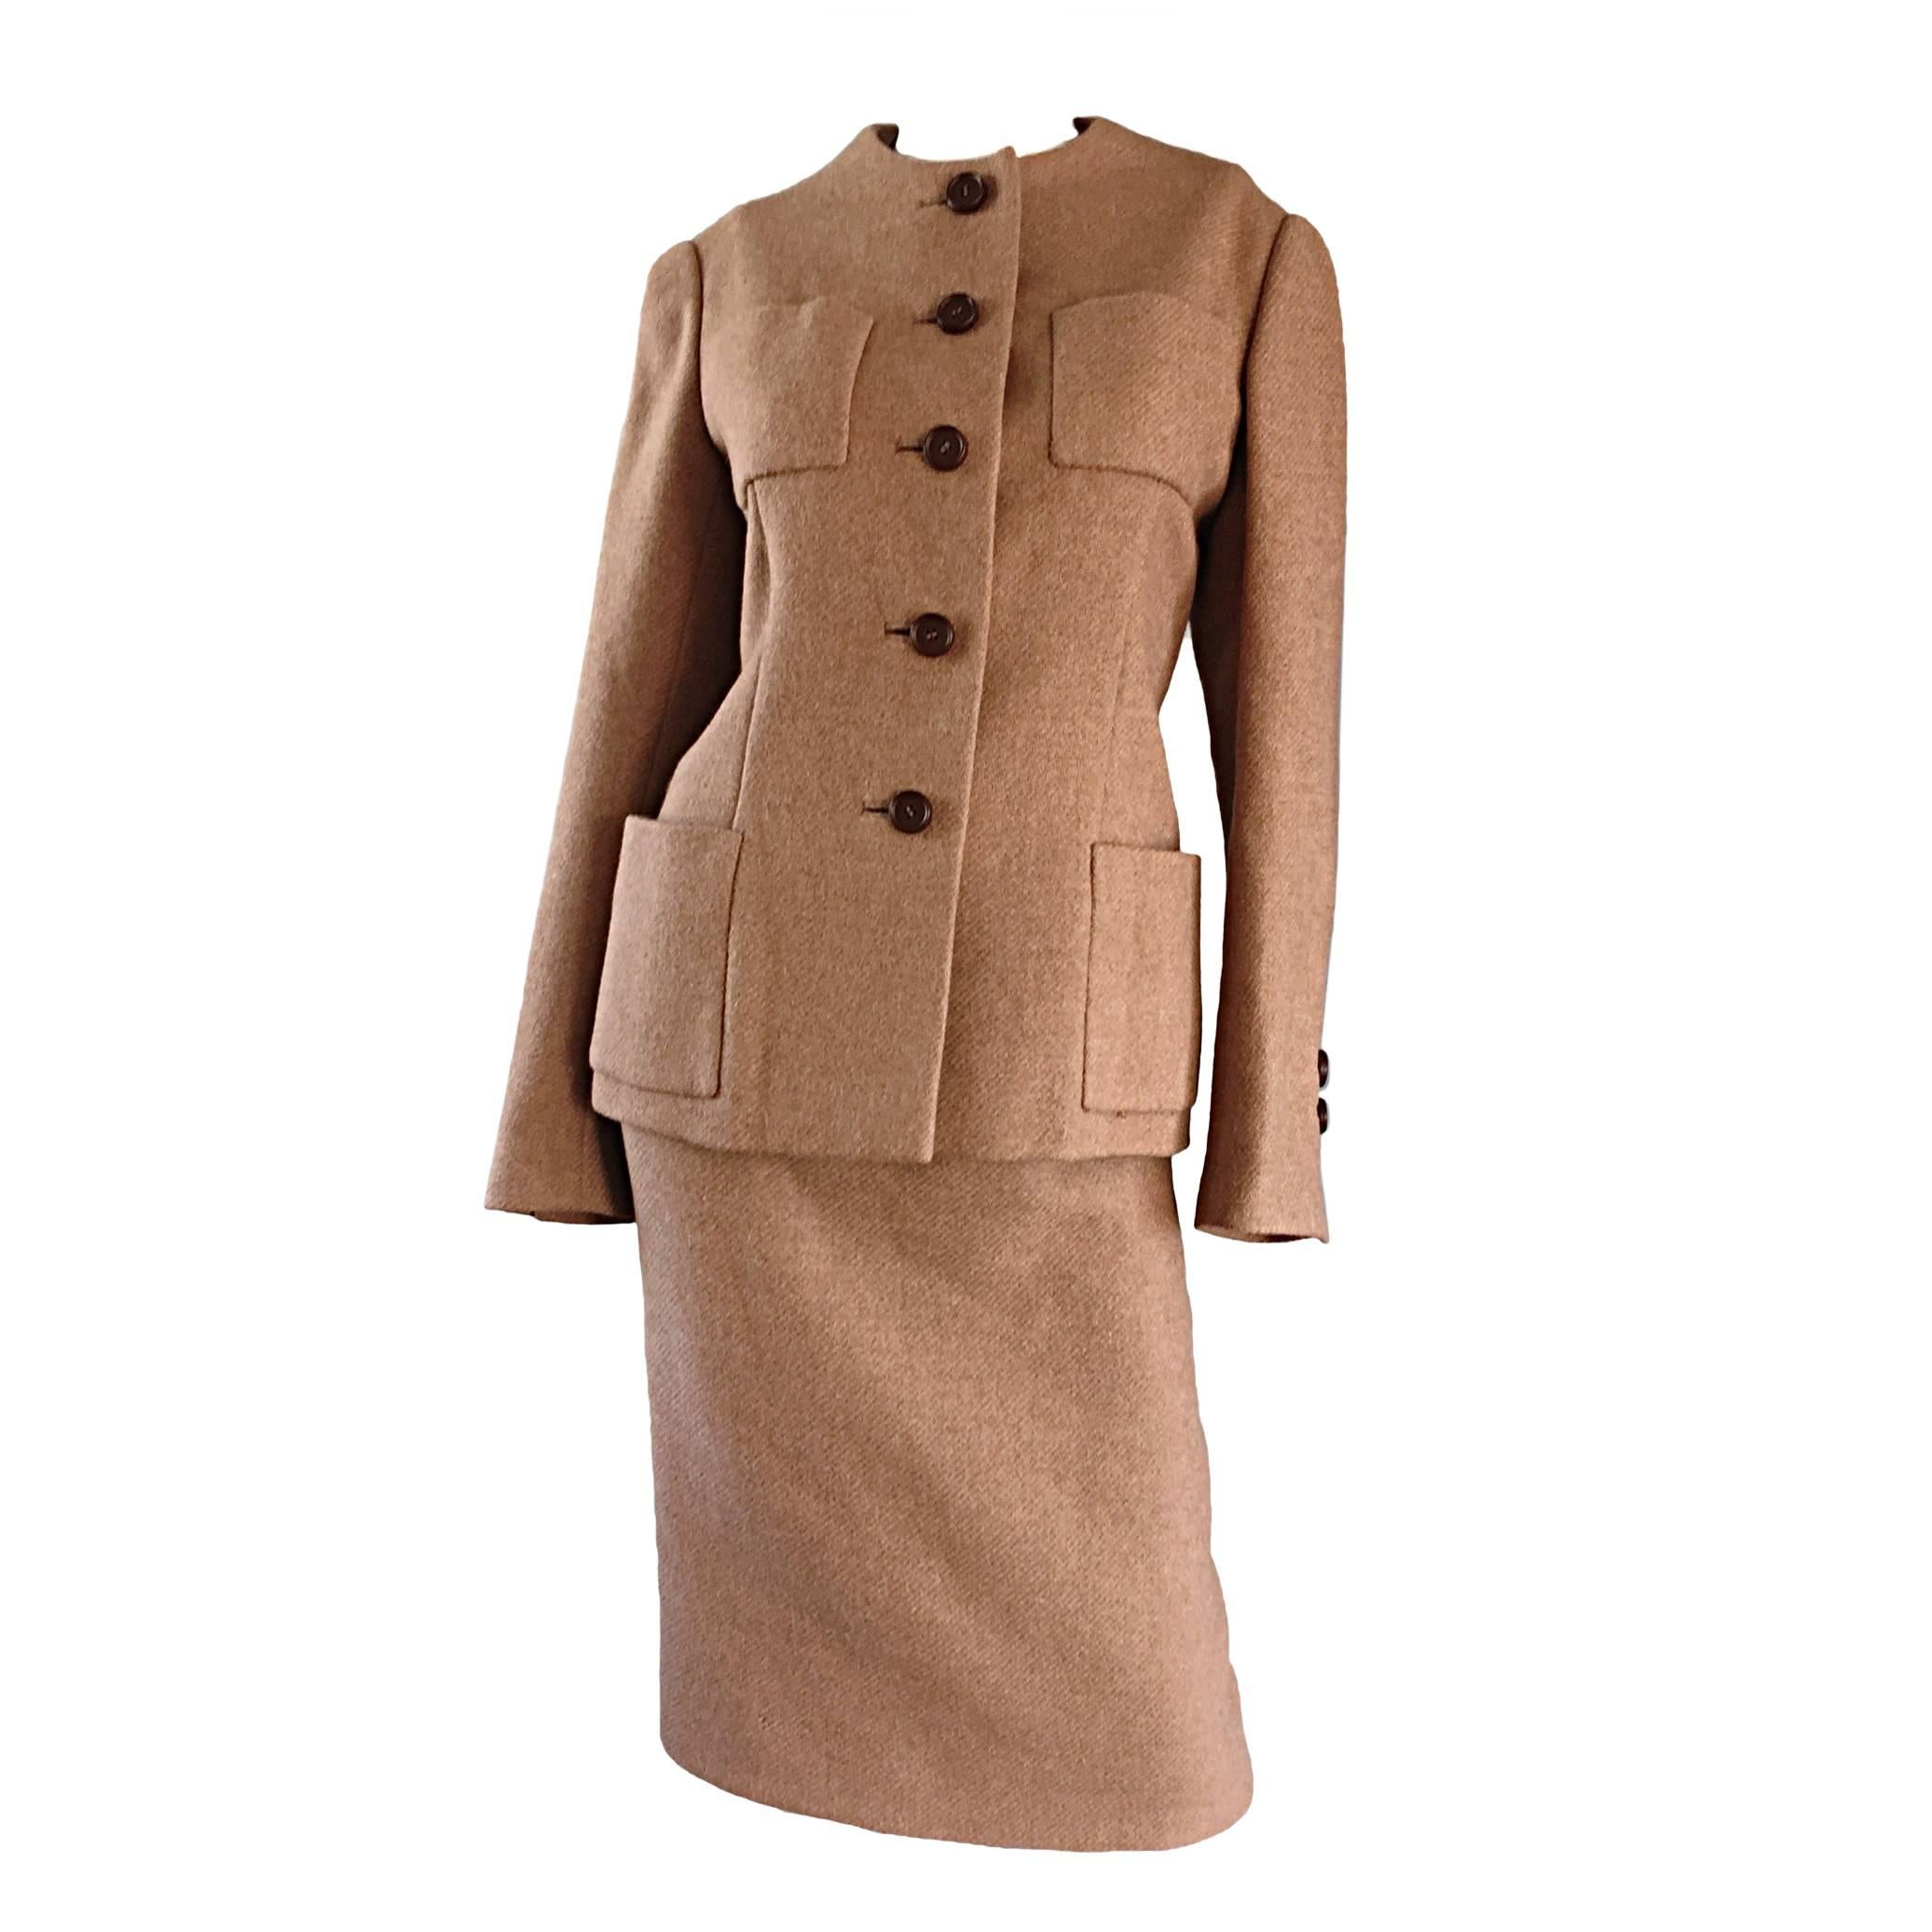 Norman Norell 1960s Size 12 Tan / Camel 60s Vintage Blazer Jacket + Skirt Suit